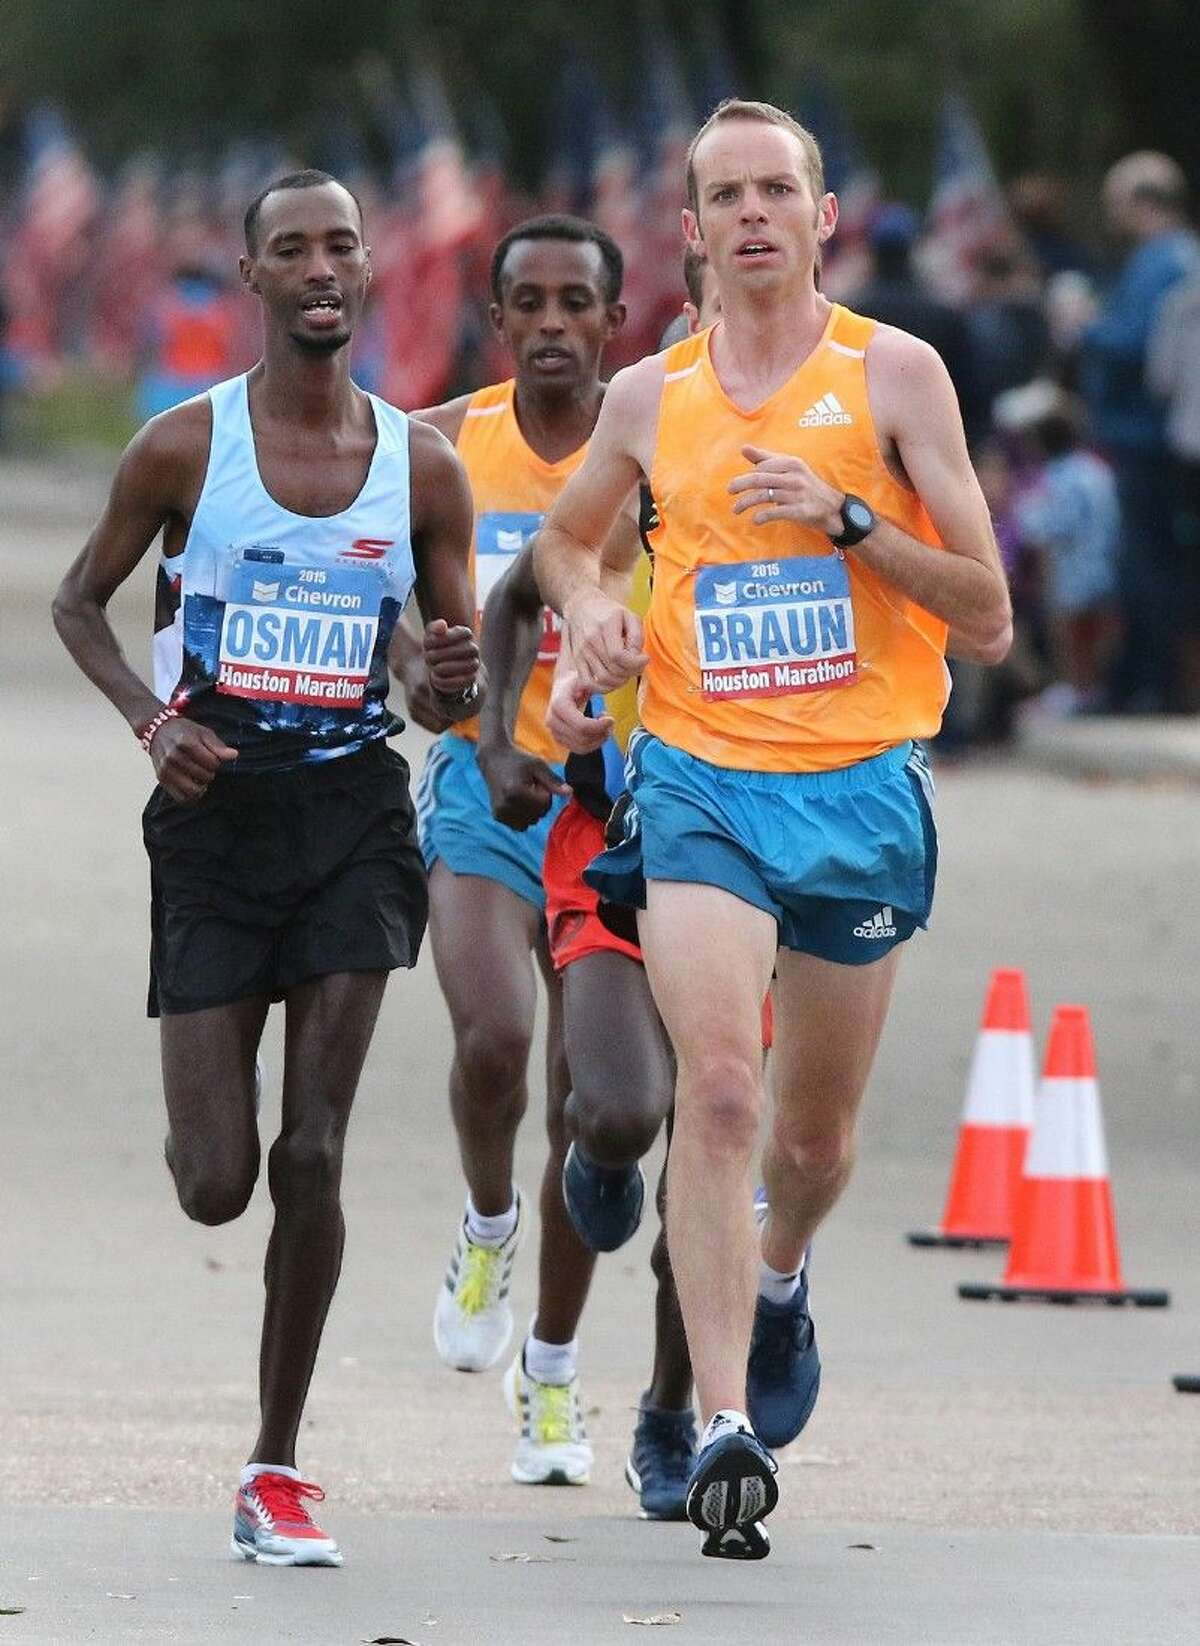 Aaron Braun, first American finisher, runs along University Boulevard in the 2015 Chevron Houston Marathon in Houston, Texas on Sunday, January 18, 2015. To view or purchase this photo and others like it, go to HCNPics.com.